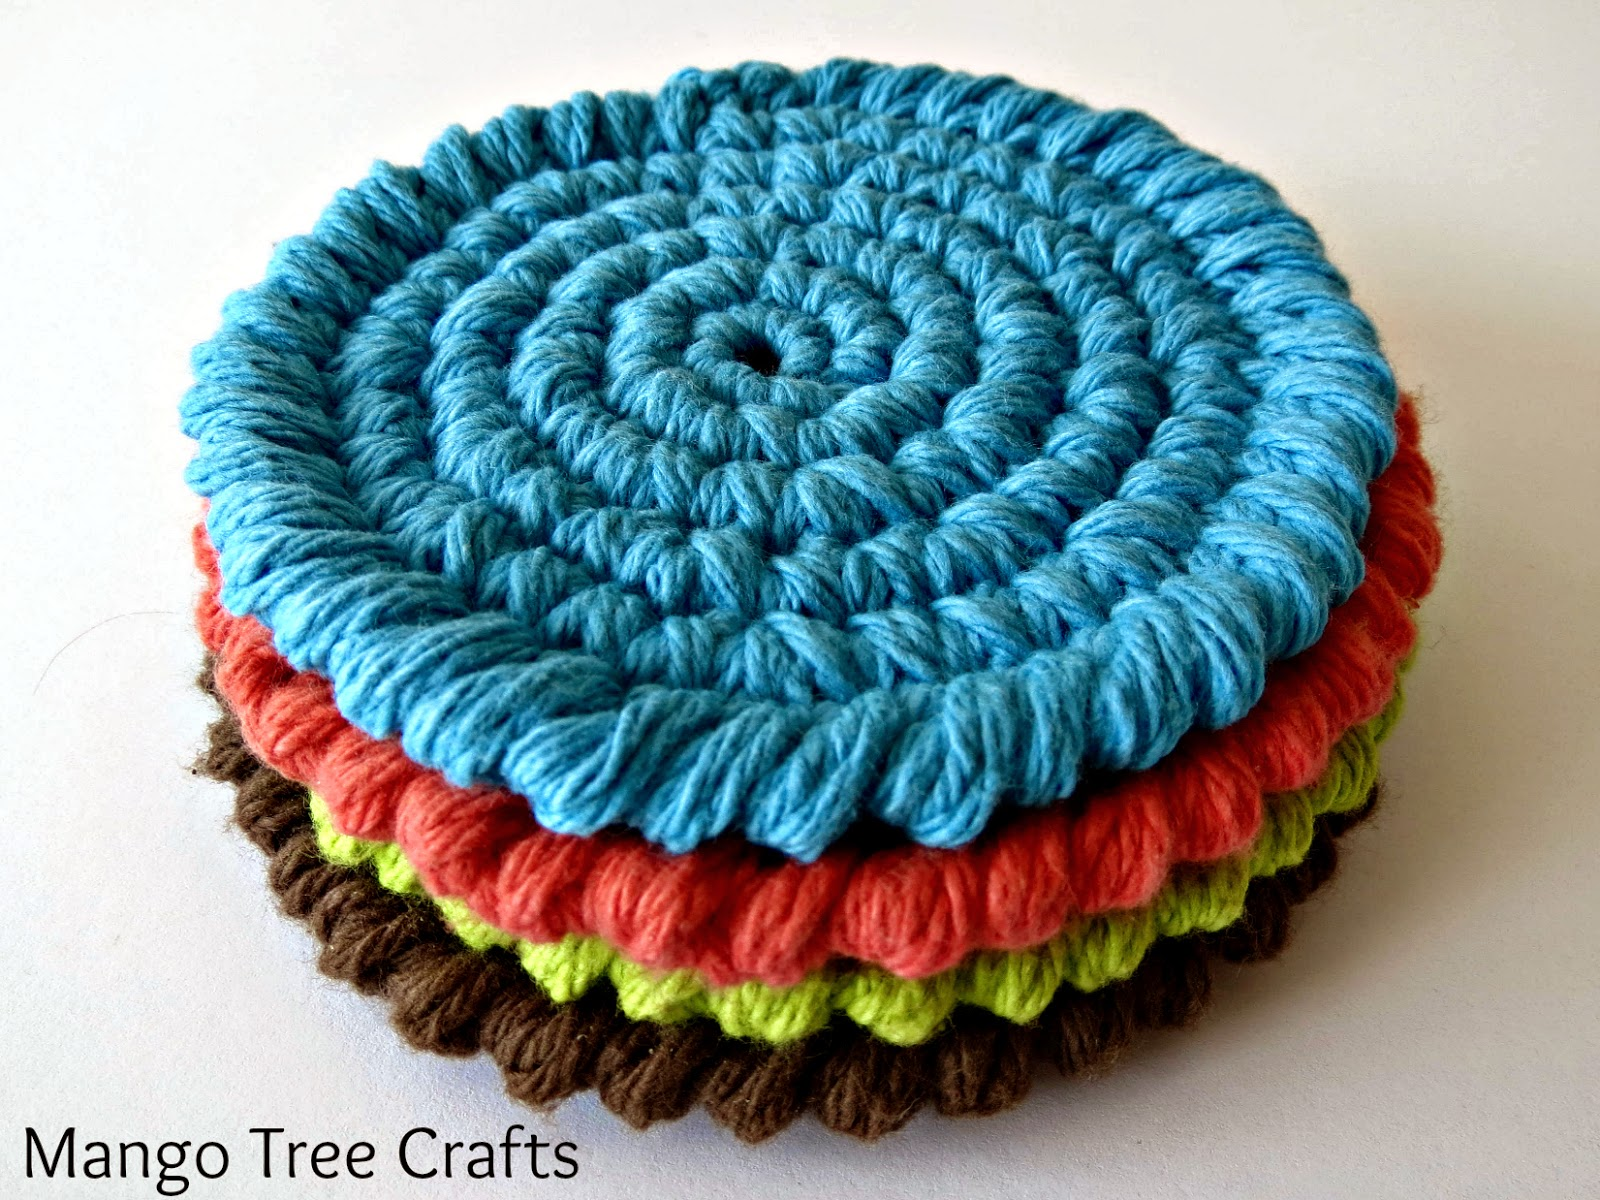 Mango Tree Crafts: Free Crochet Coasters Pattern